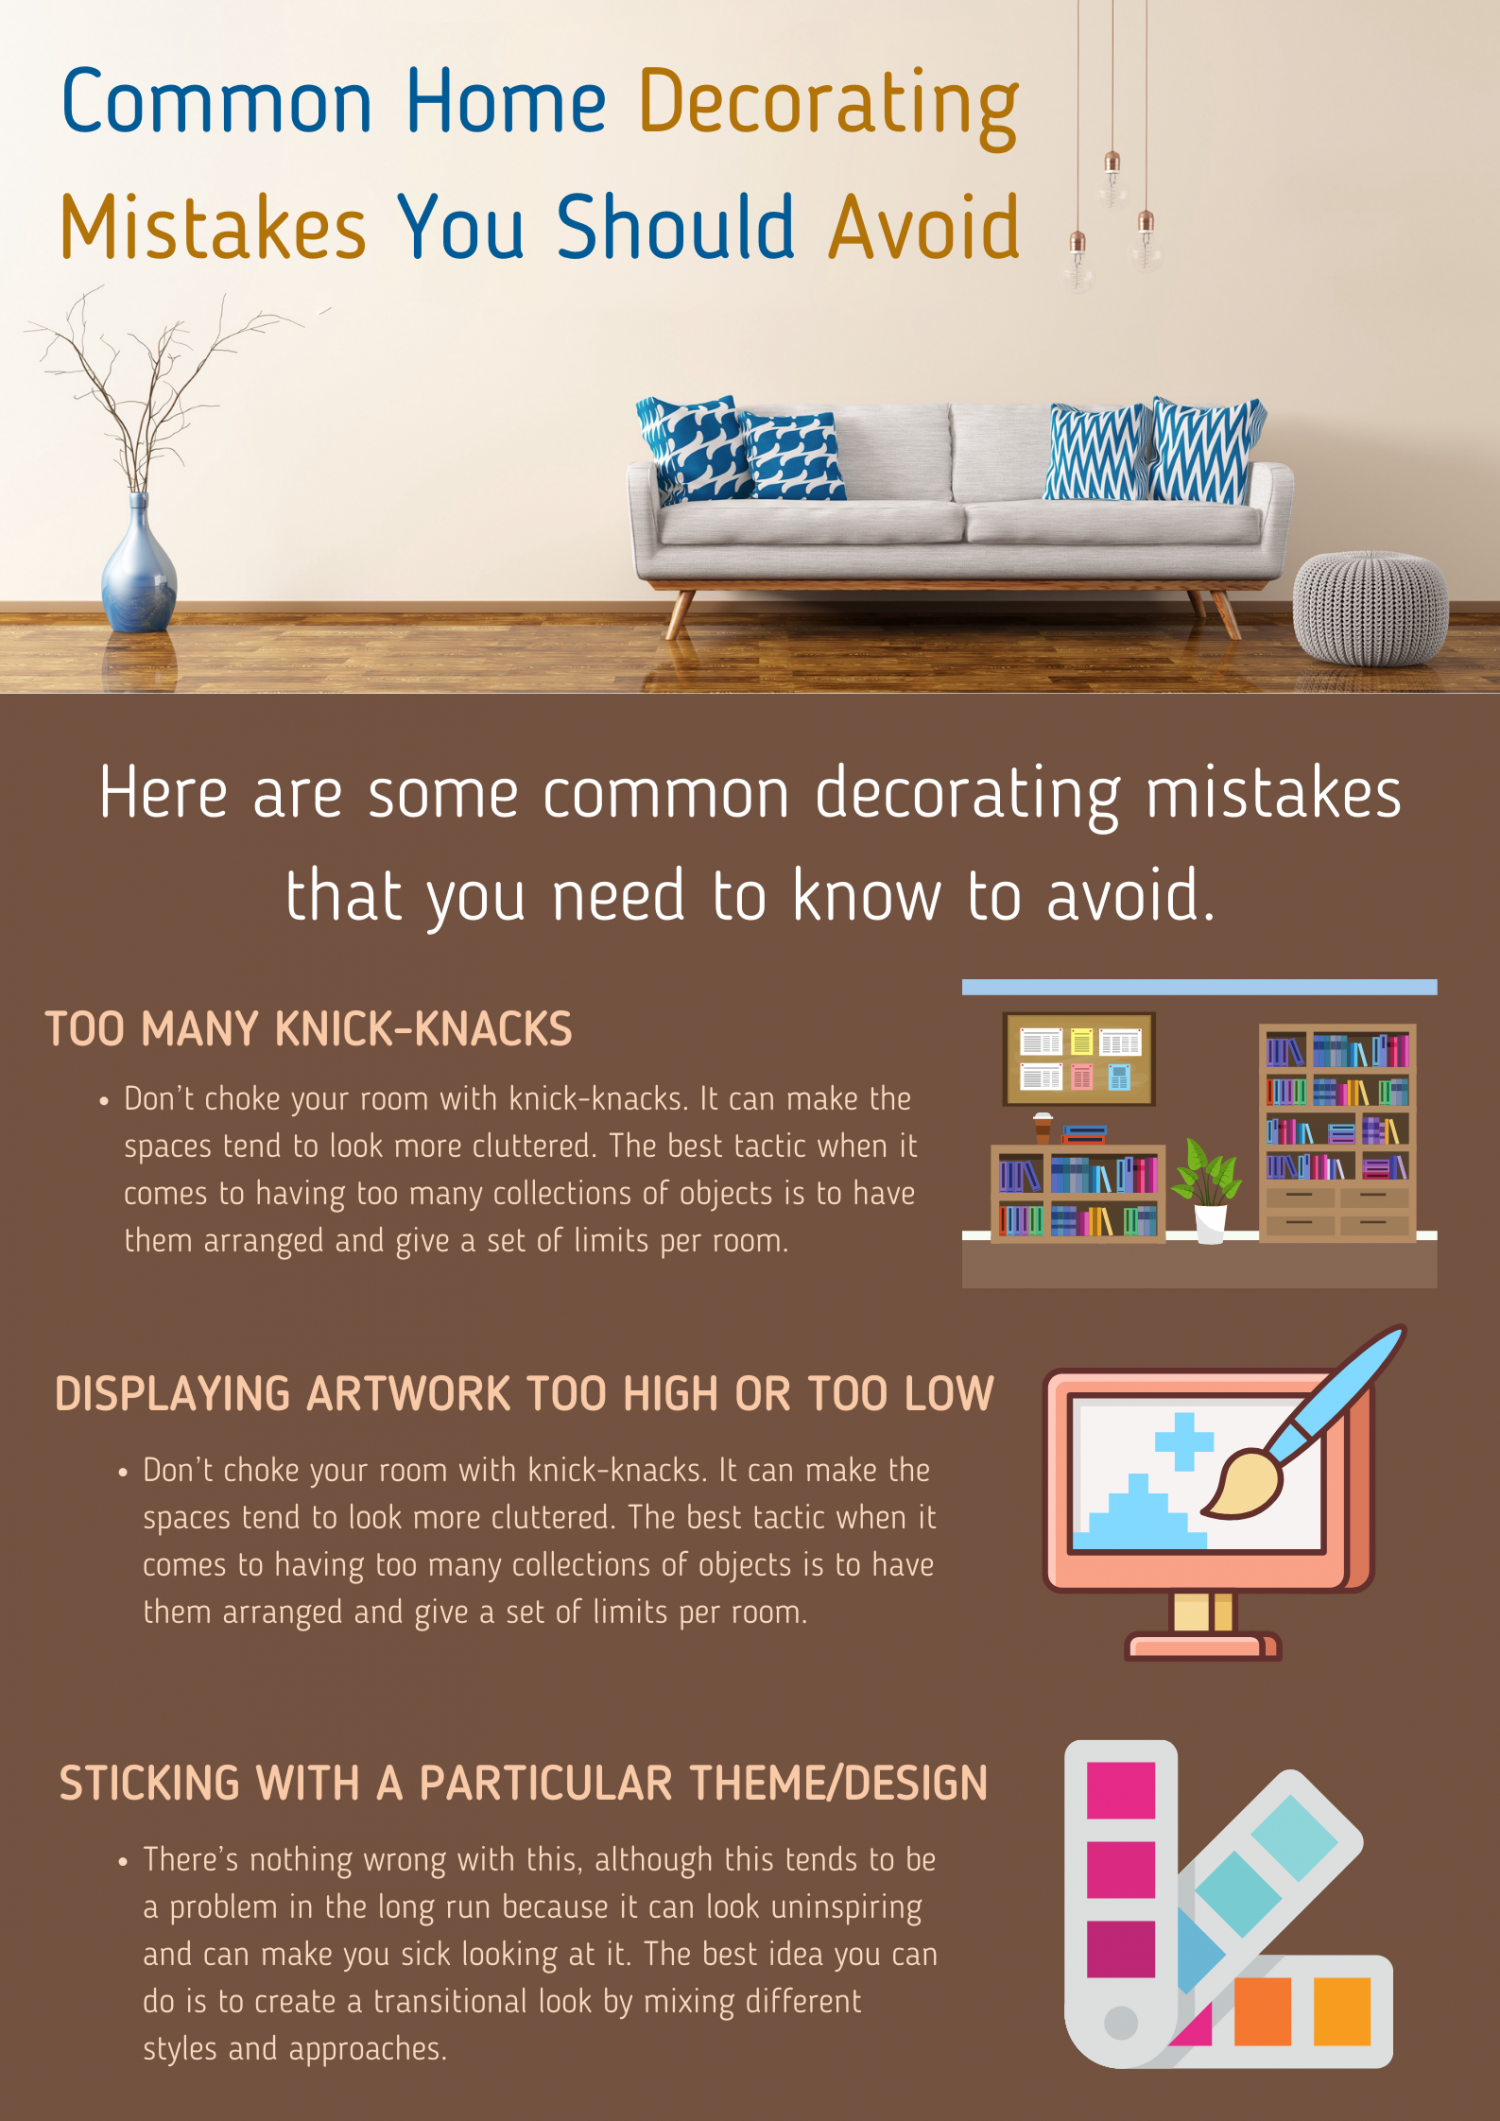 Common Home Decorating Mistakes You Should Avoid Infographic